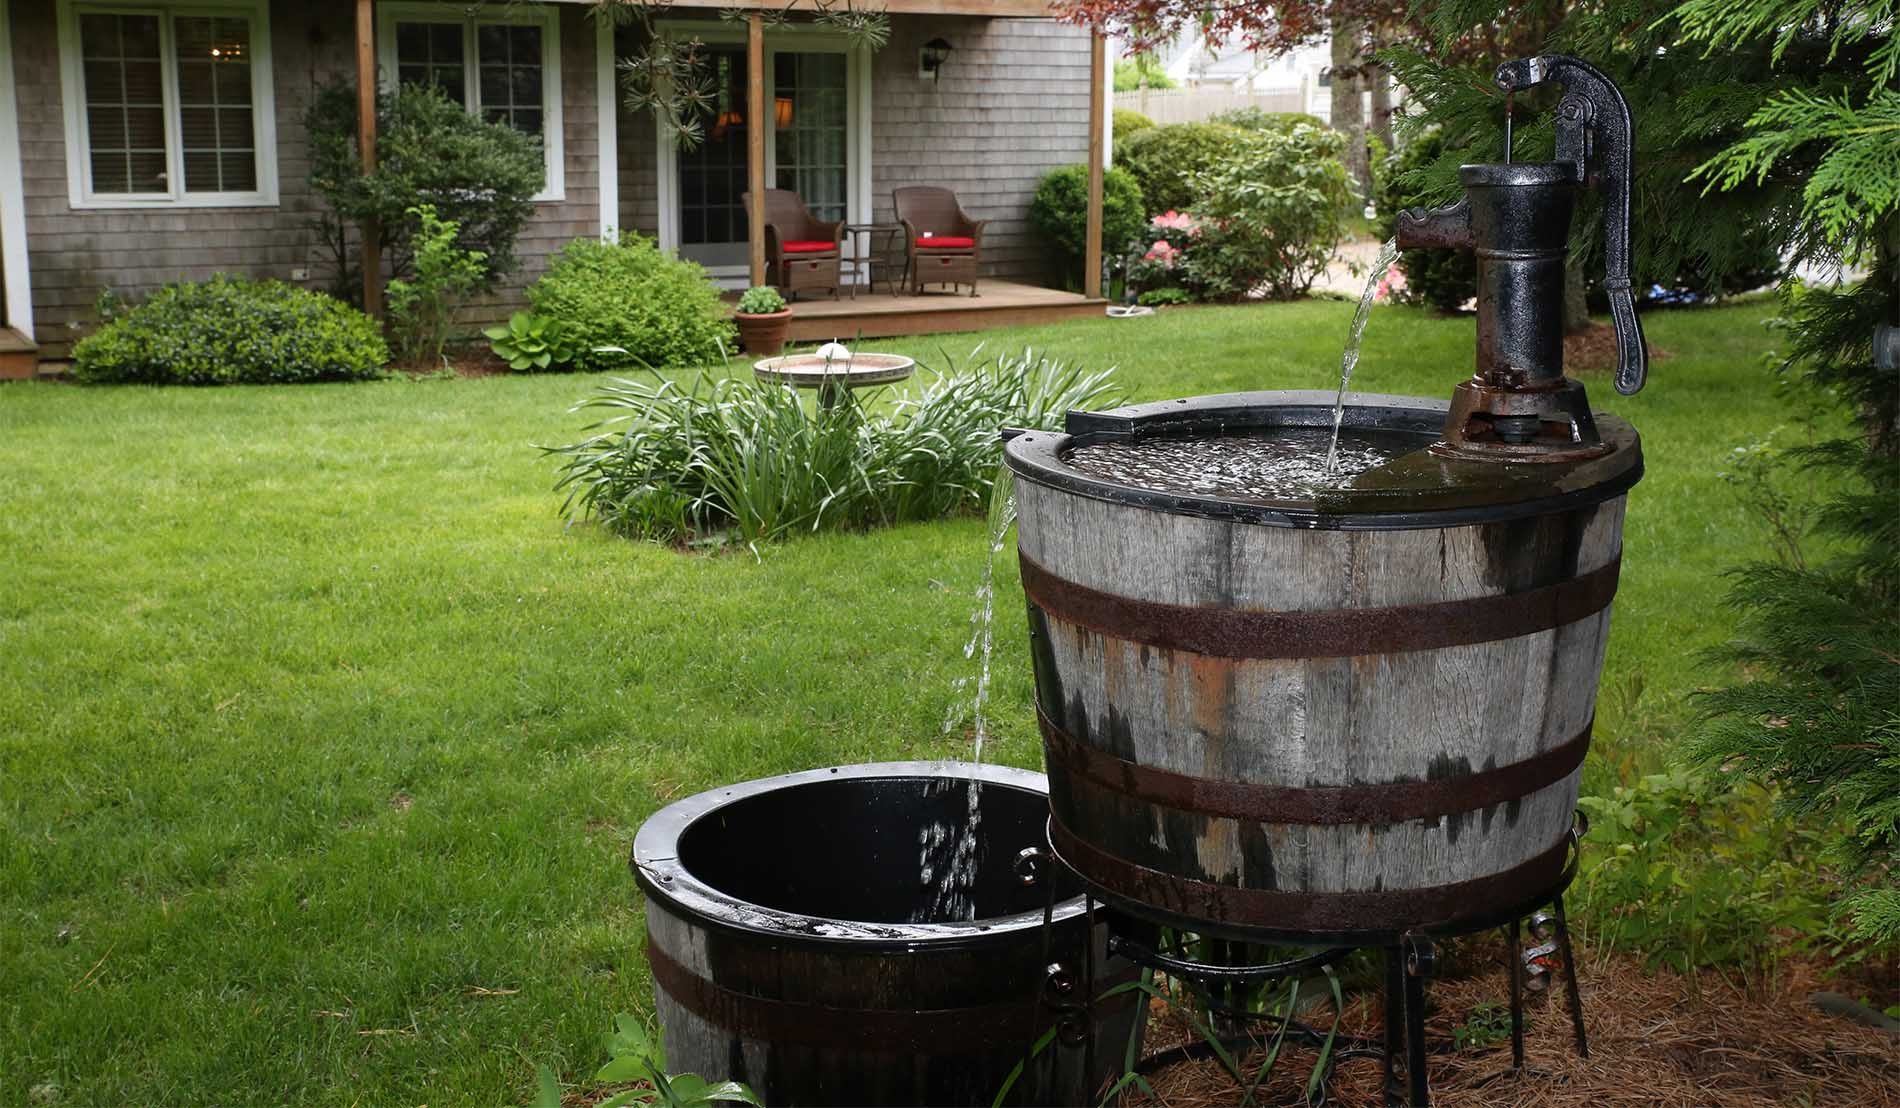 Double bucket fountain behind exterior of stables building showing guestroom patios in background